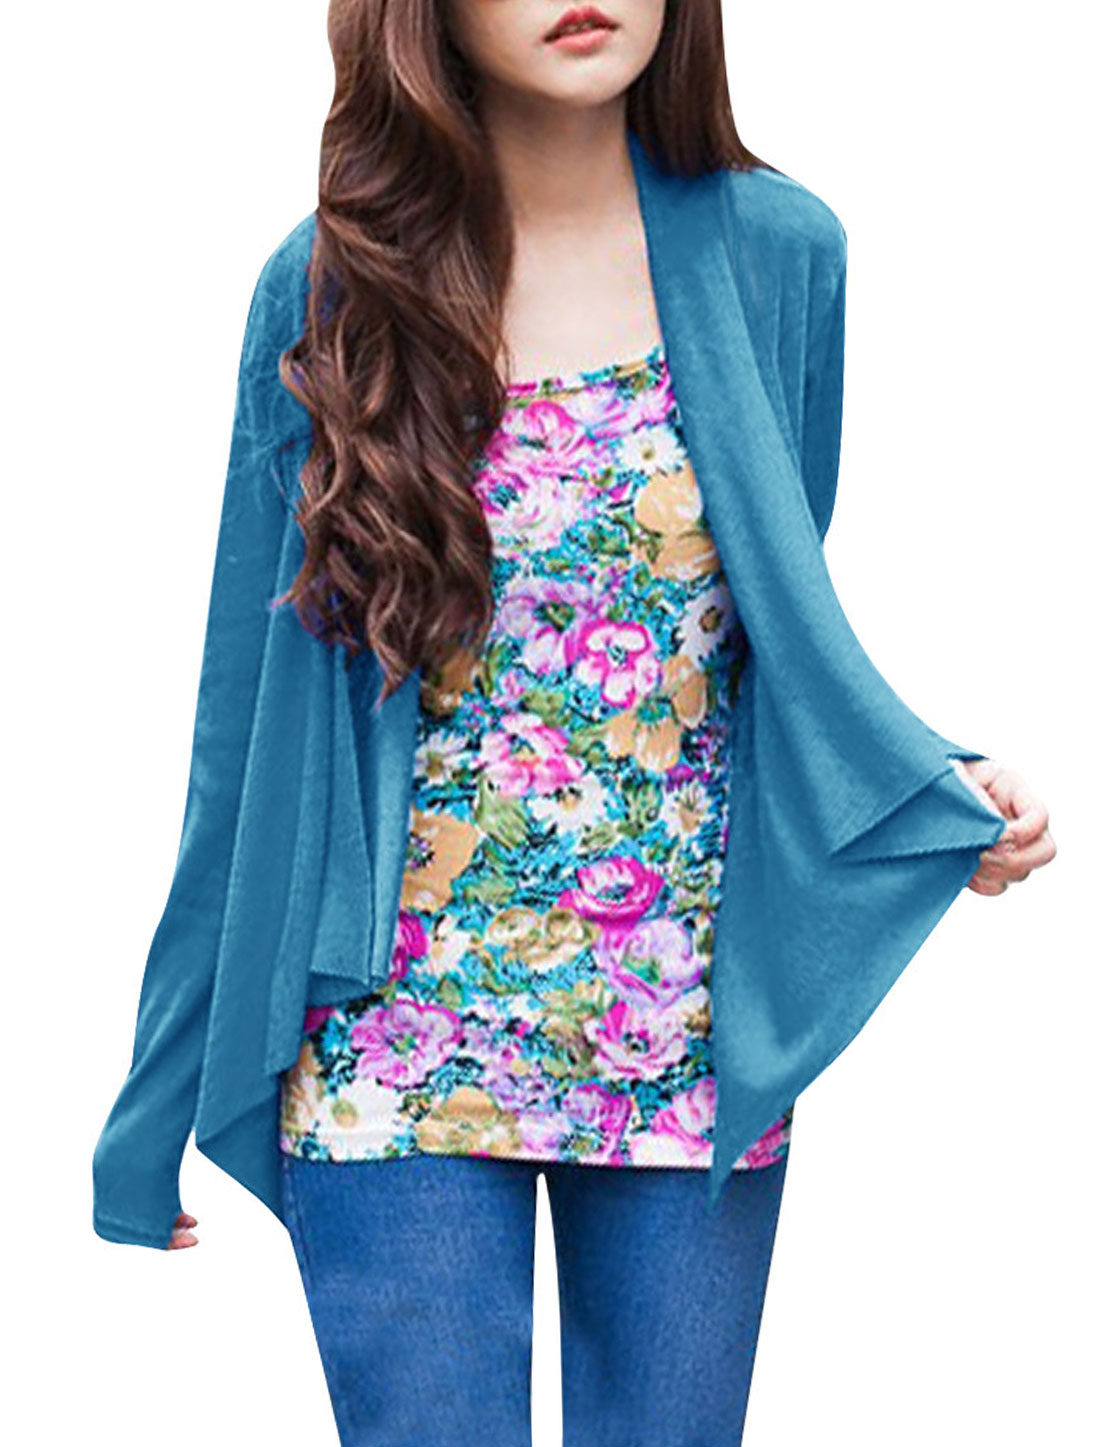 Woman NEW Open Front Design Solid Color Sea Blue Spring Cardigan XS